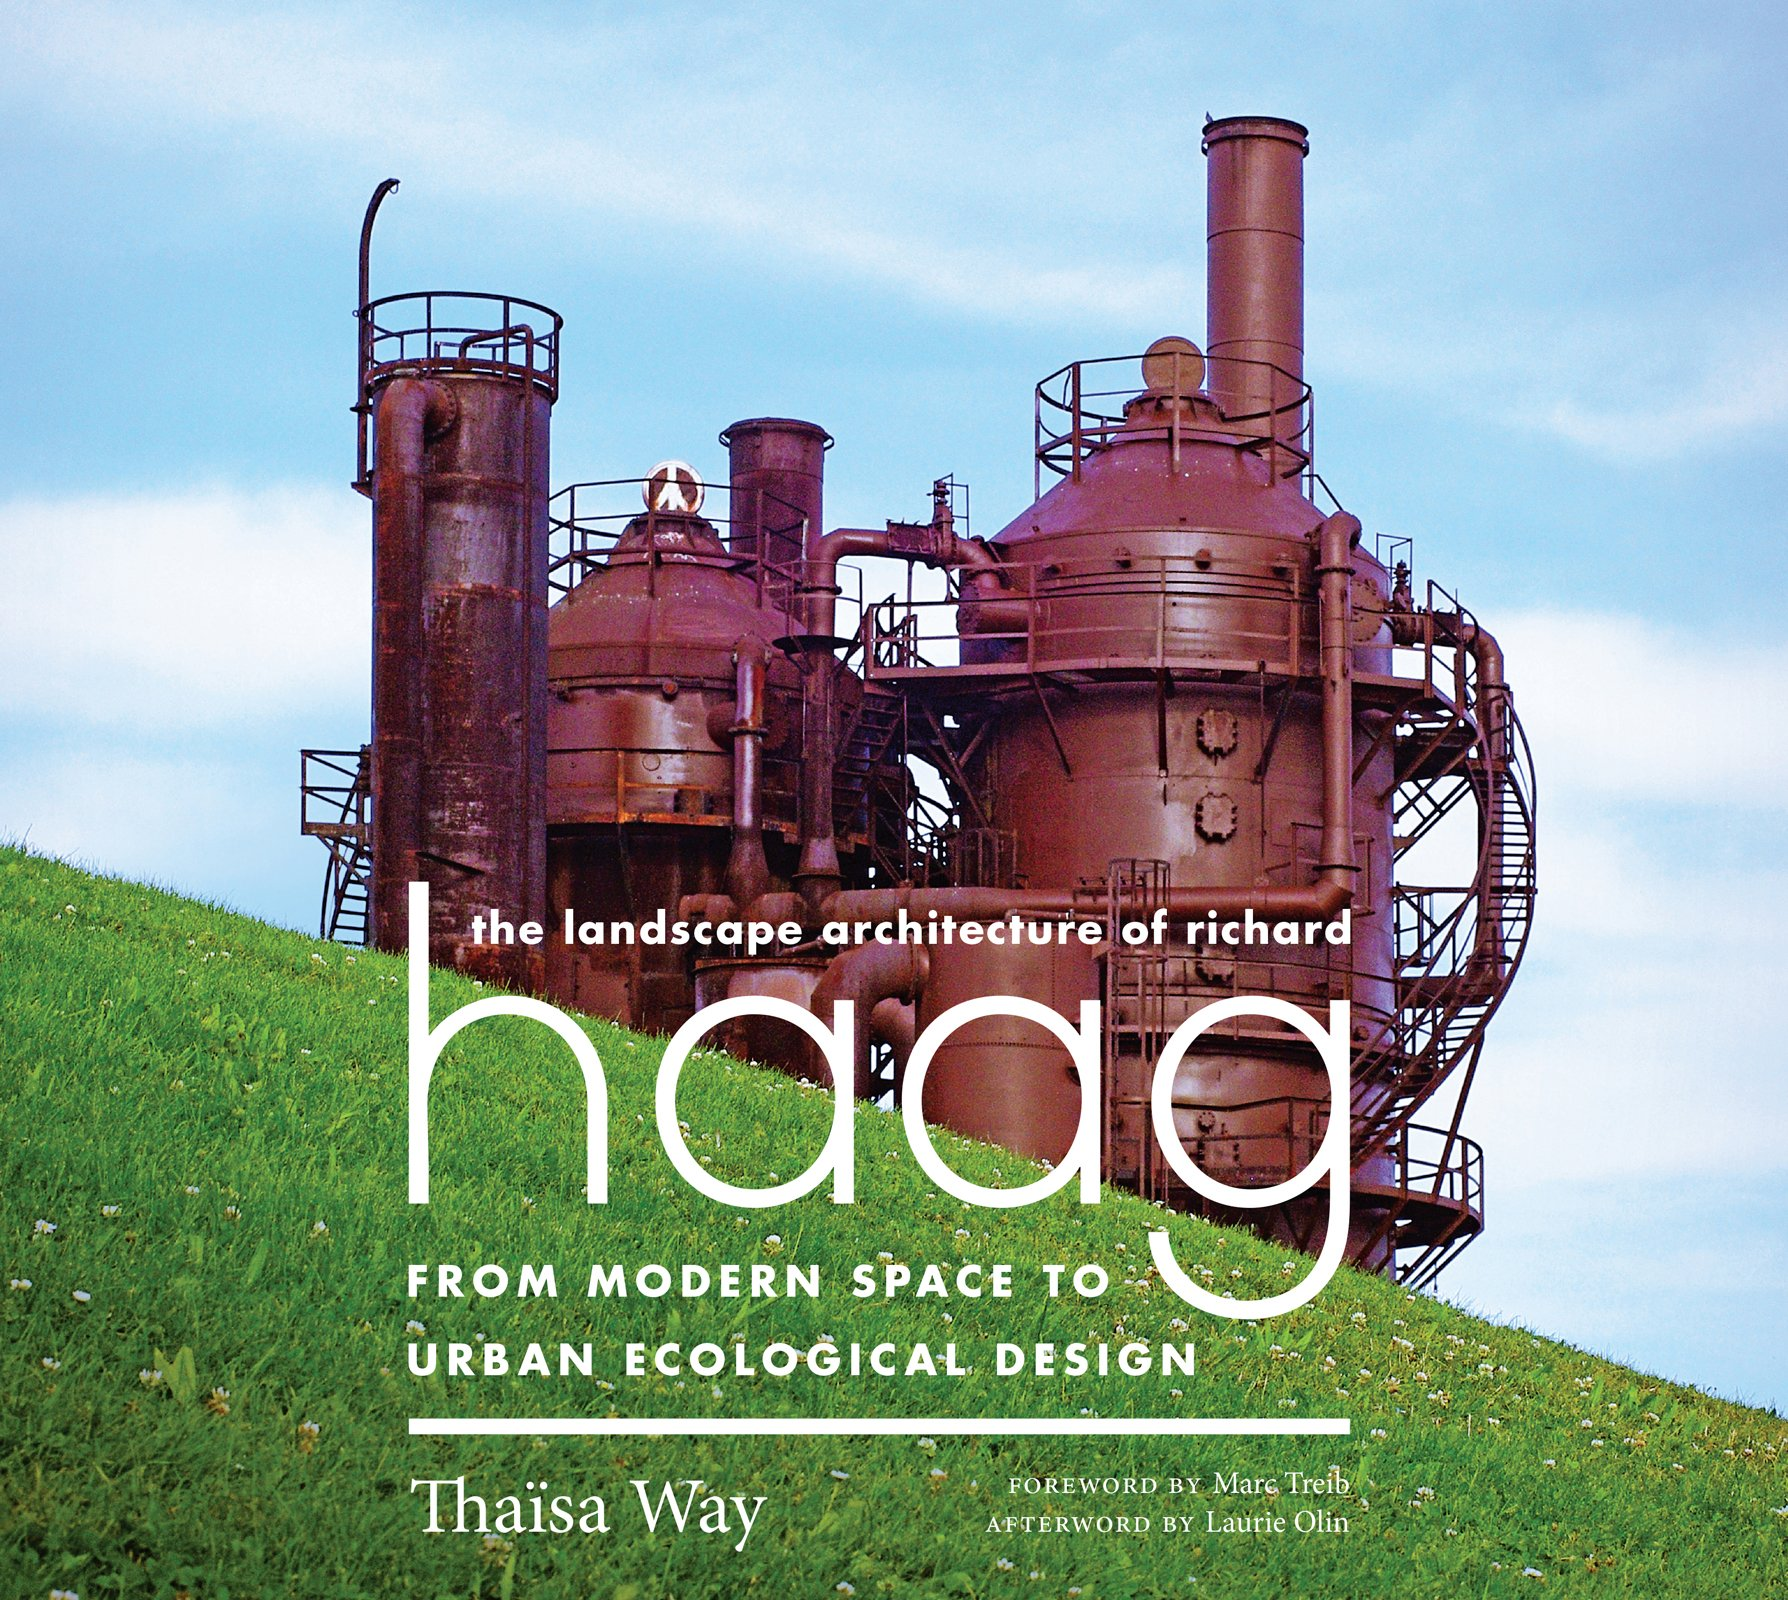 The Landscape Architecture of Richard Haag: From Modern Space to Urban Ecological Design